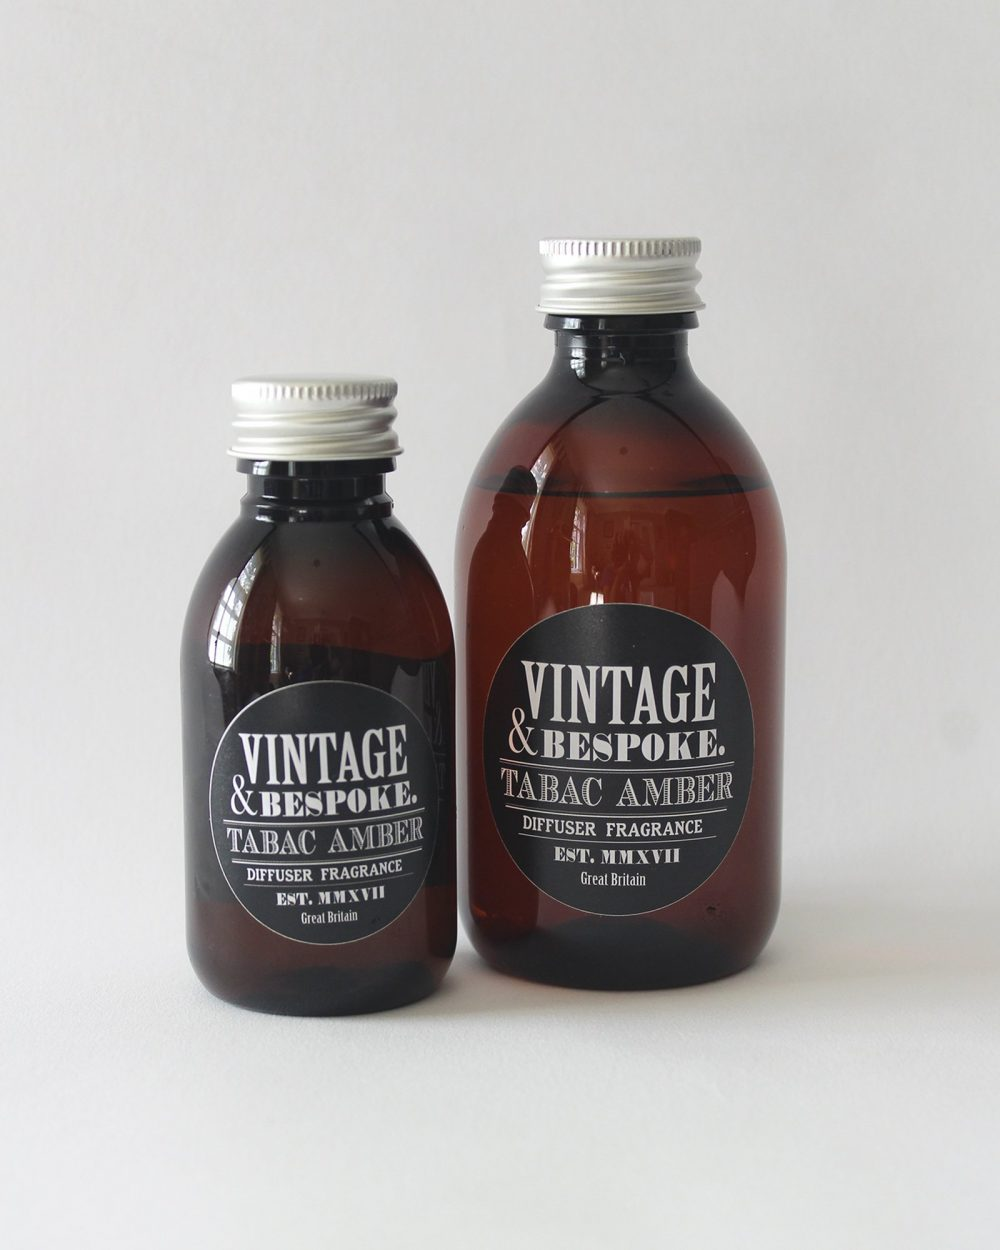 Diffuser Fragrance Refills for Women and Men - from Vintage and Bespoke